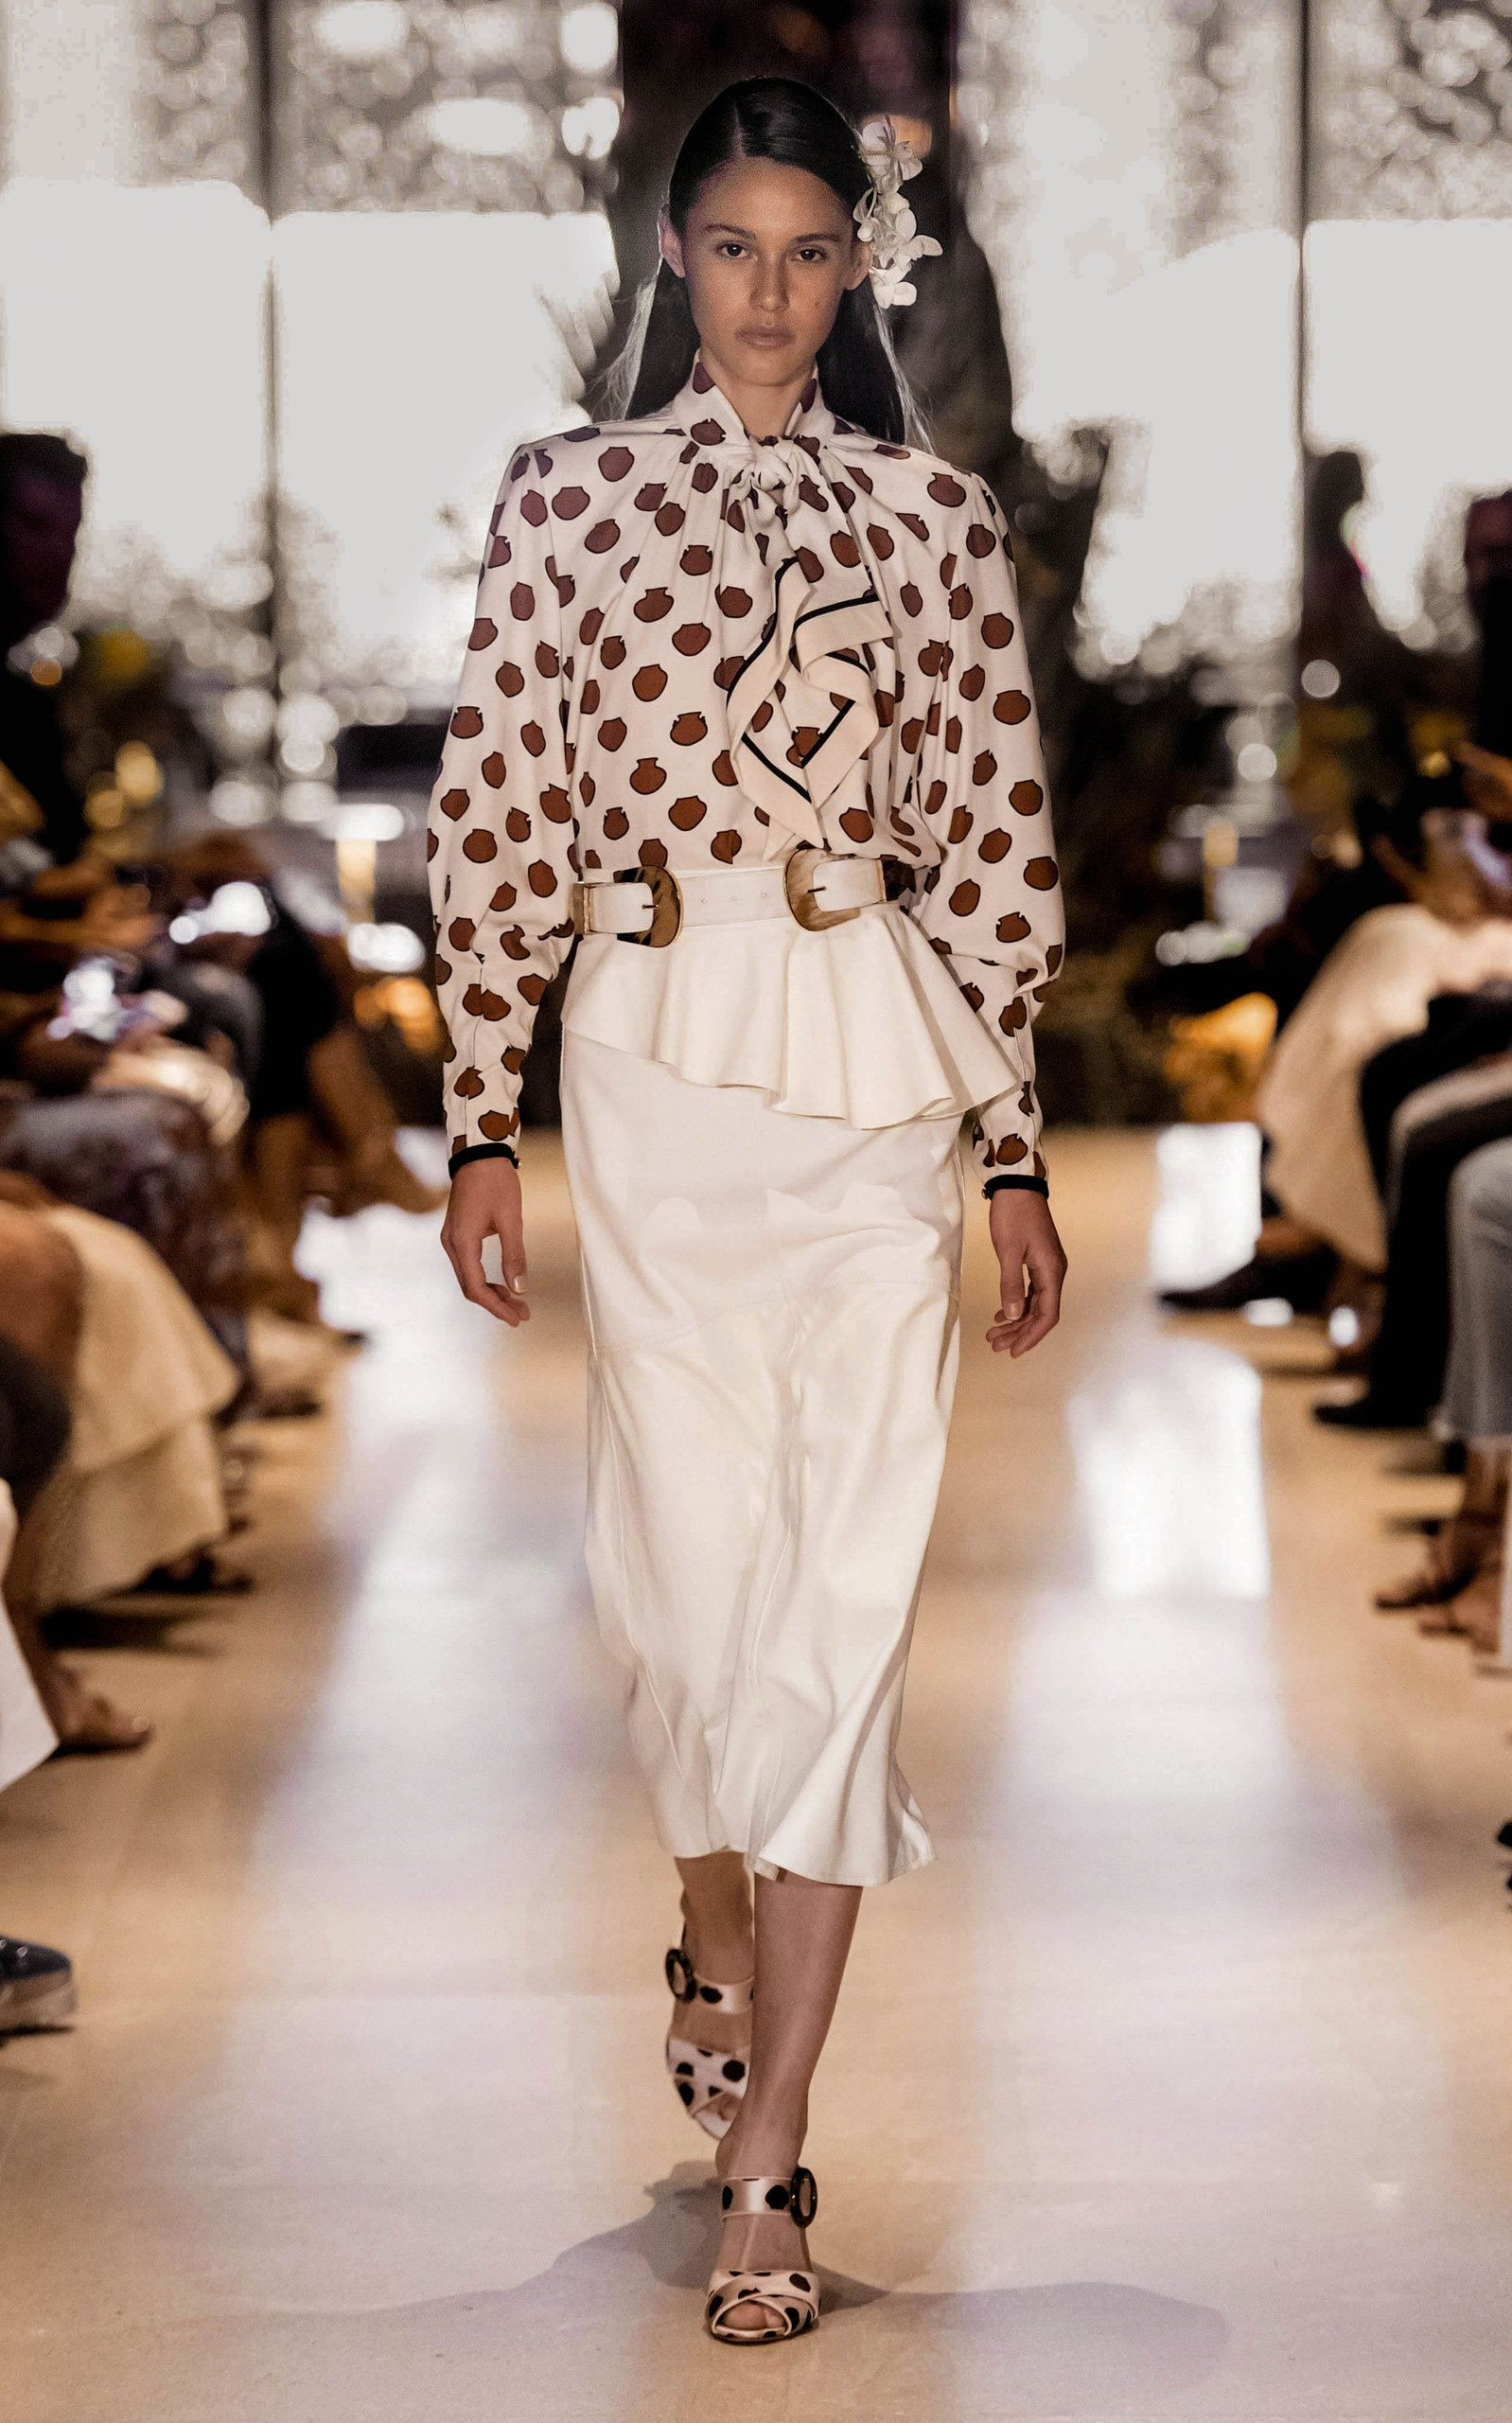 Outfits With White Skirt, Paris Fashion Week, Aleyna FitzGerald